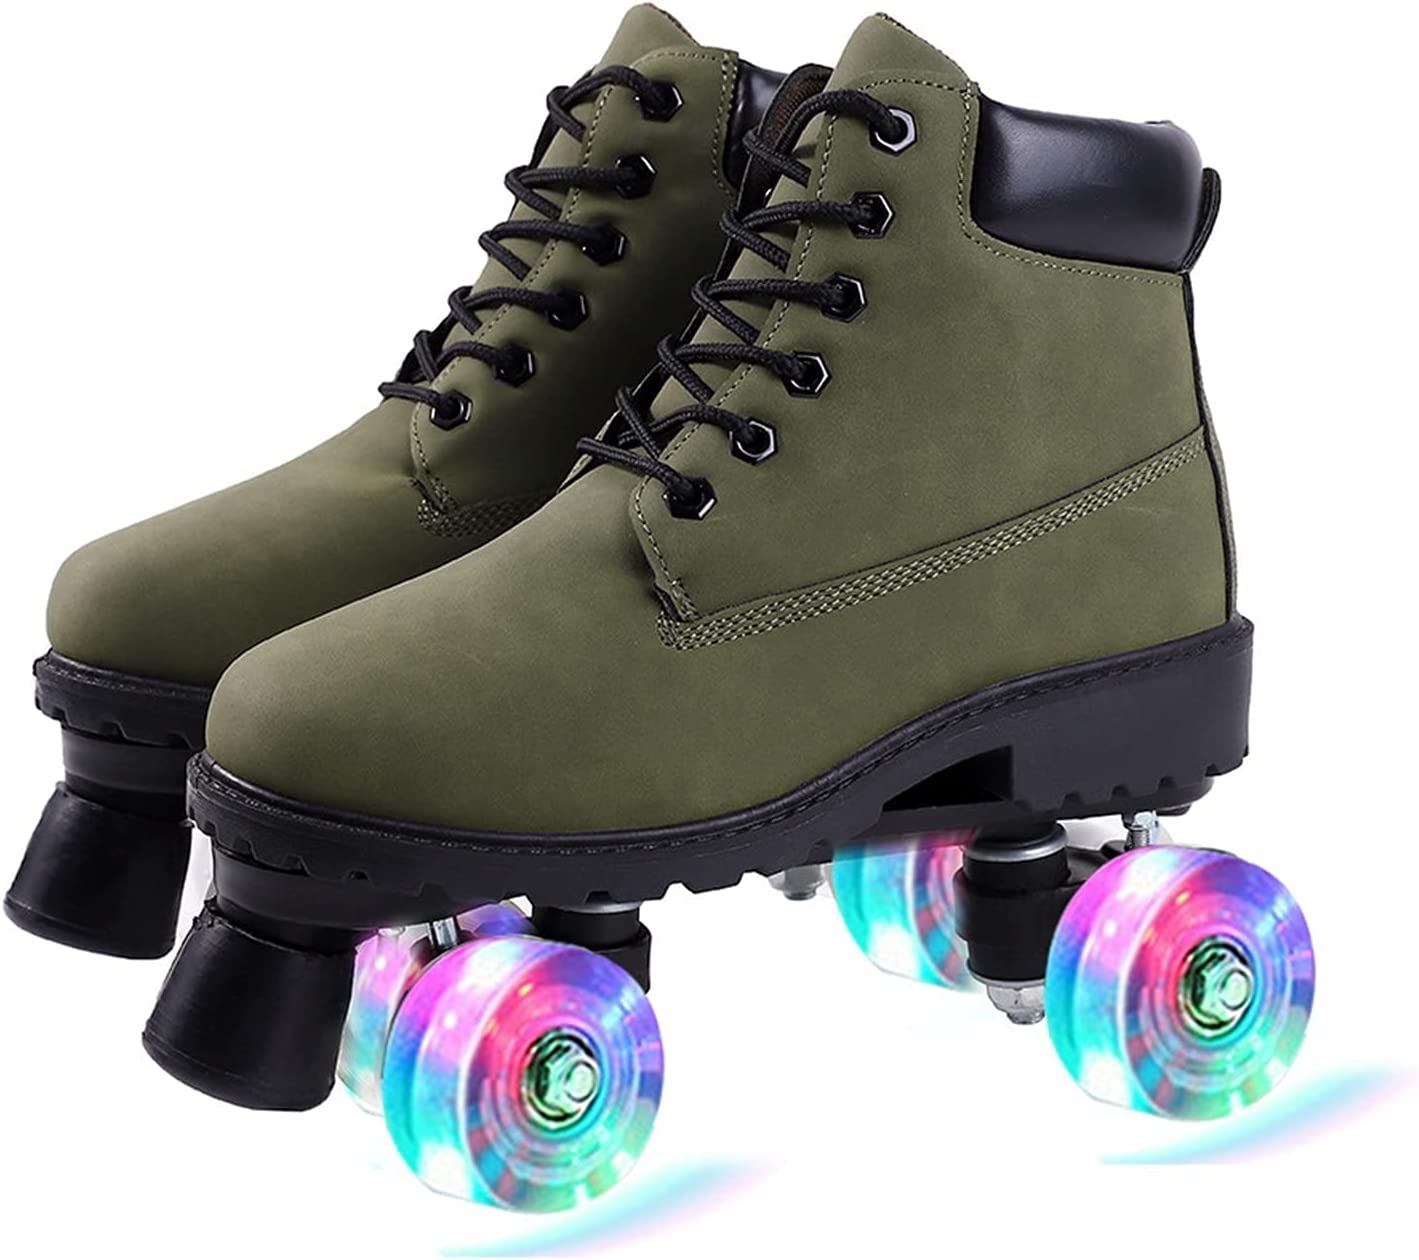 CHENGSYSTE Inline Skates 2021 Super sale period limited Hot Max 44% OFF Roller Woman Man Summer